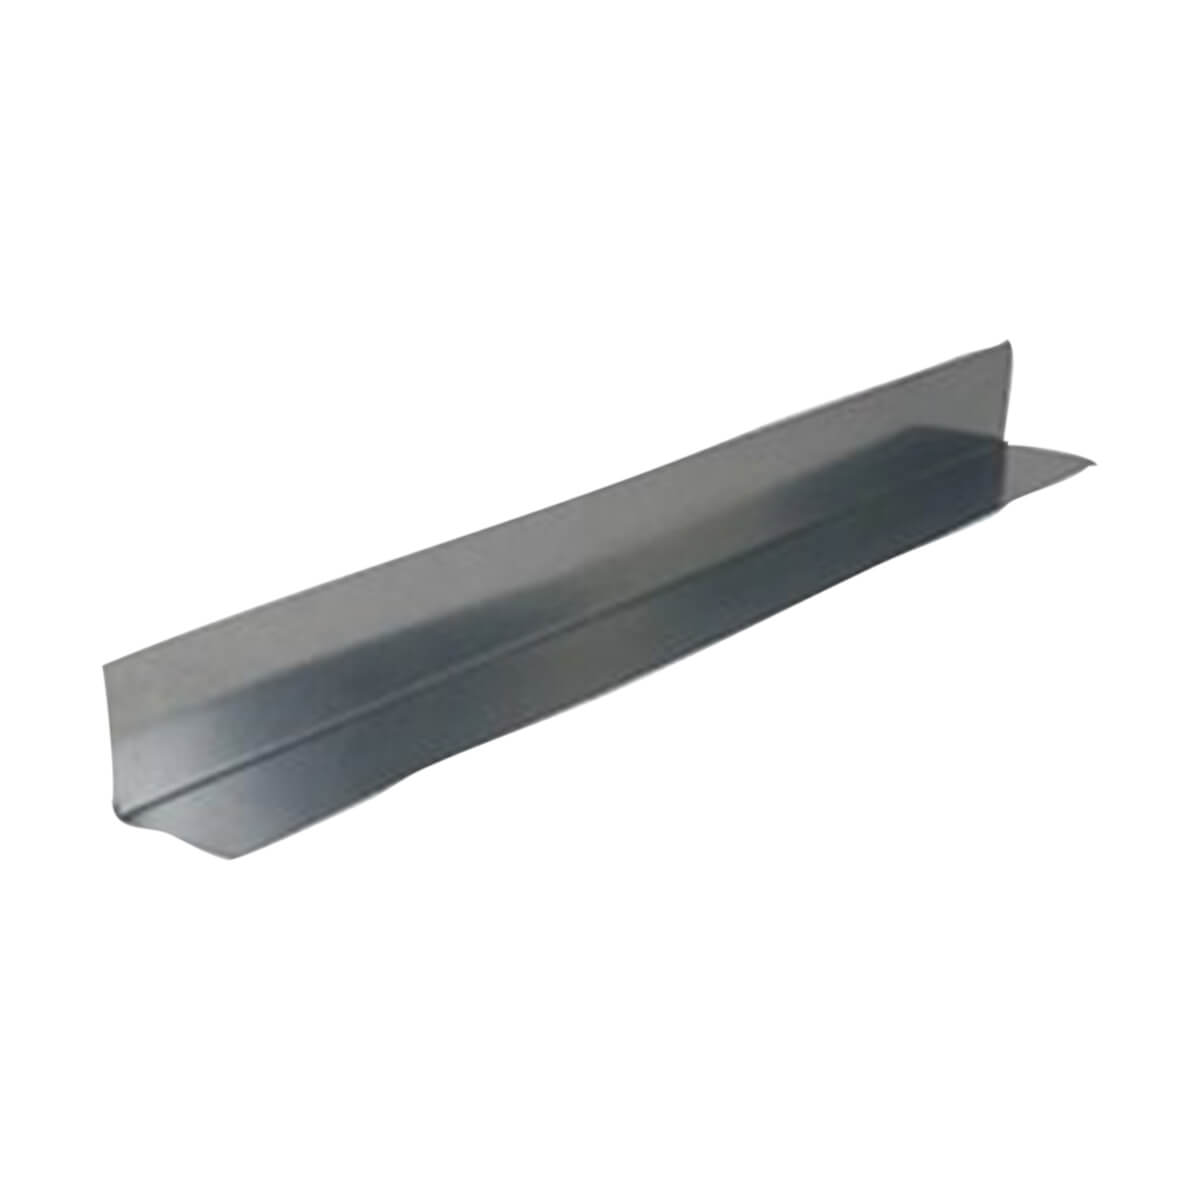 Kaycan Angle Flashing - 4-in x 4-in x 10-ft - Natural Finish